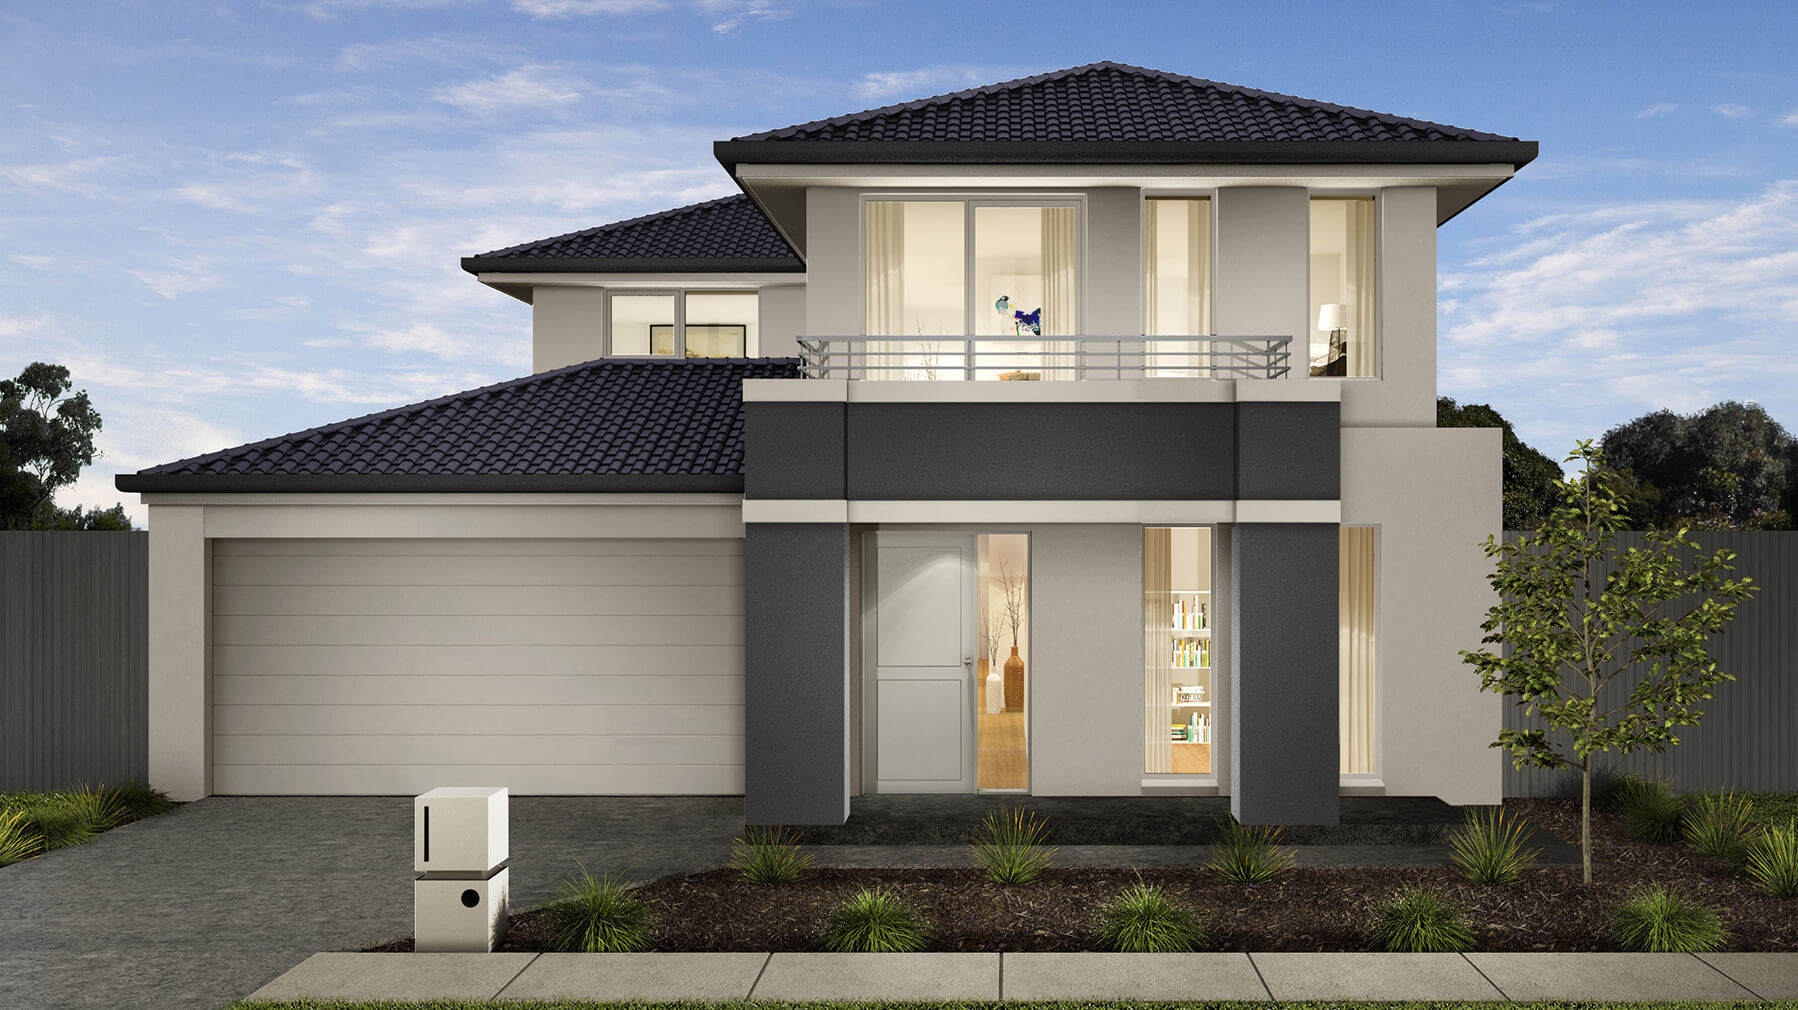 EASYLIVING SANDRIDGE 12.5 (HEBEL) Exterior Image 2